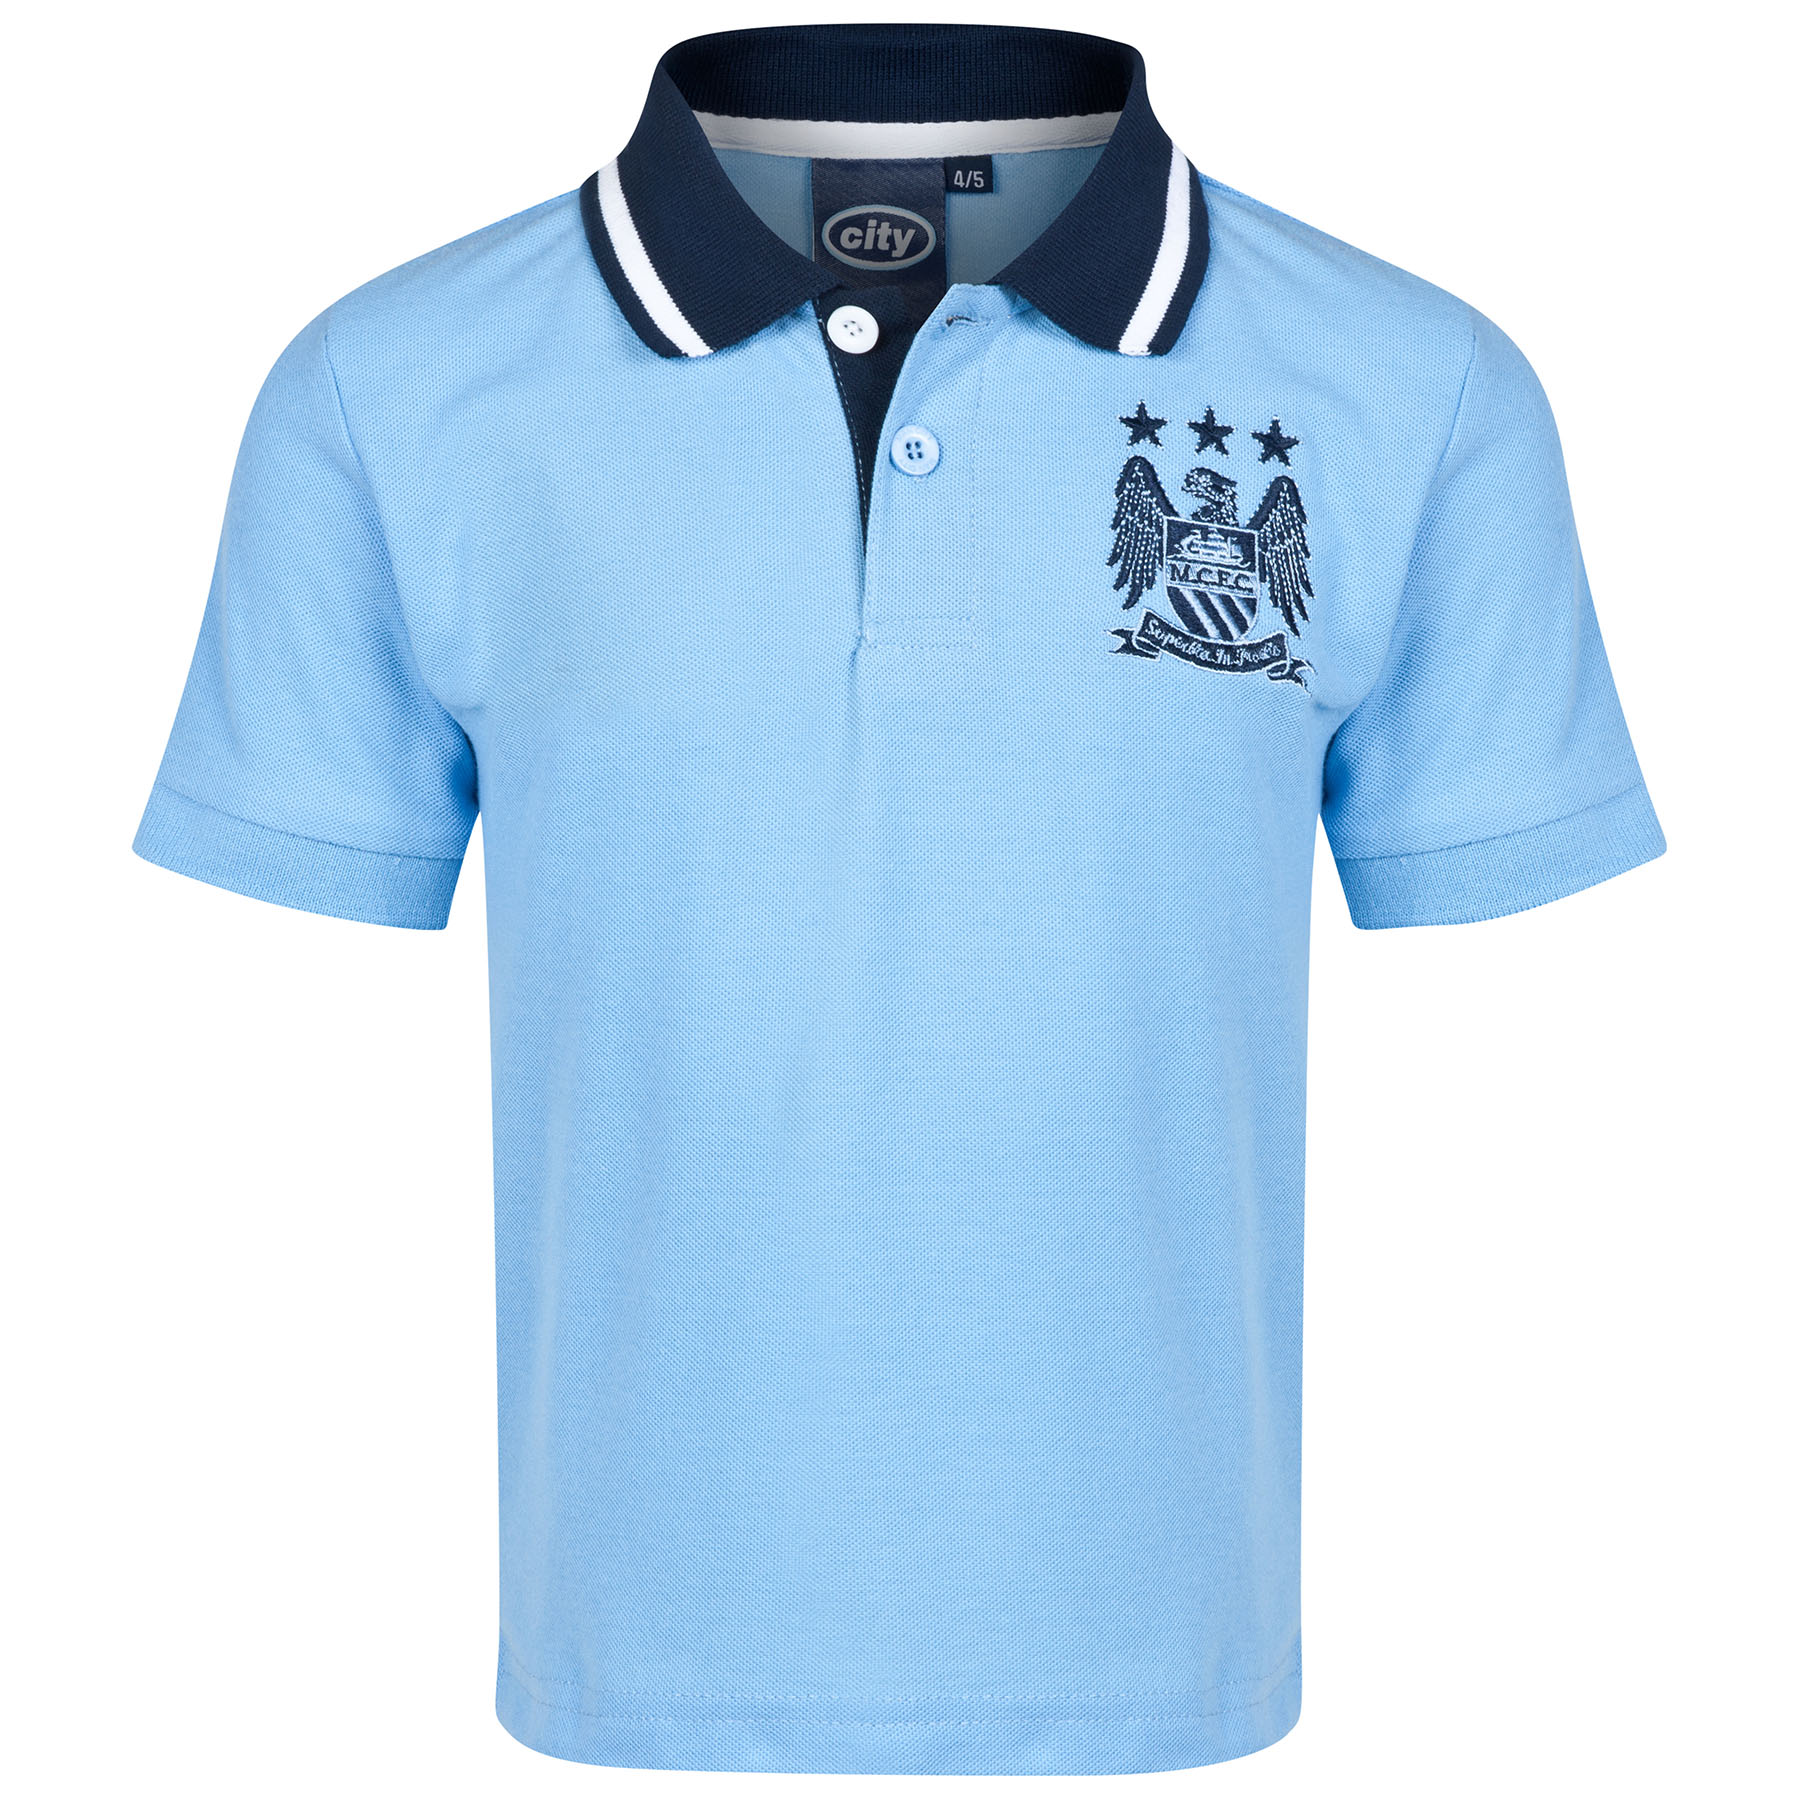 Manchester City Essential Polo Shirt - Sky - Infant Boys